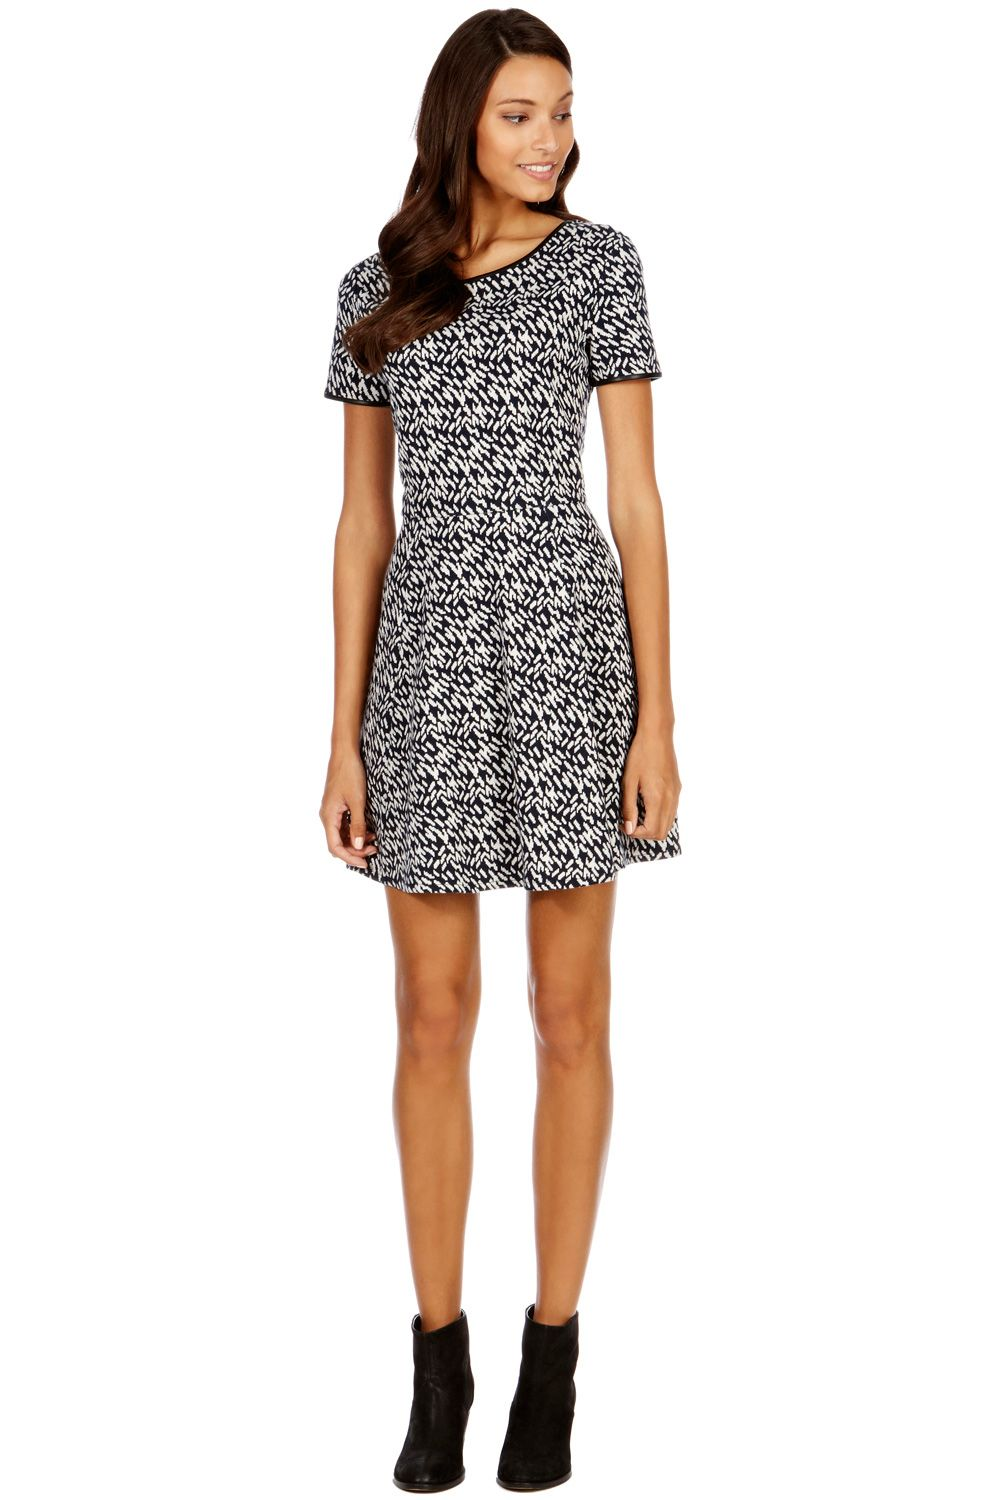 Brushstroke jacquard dress